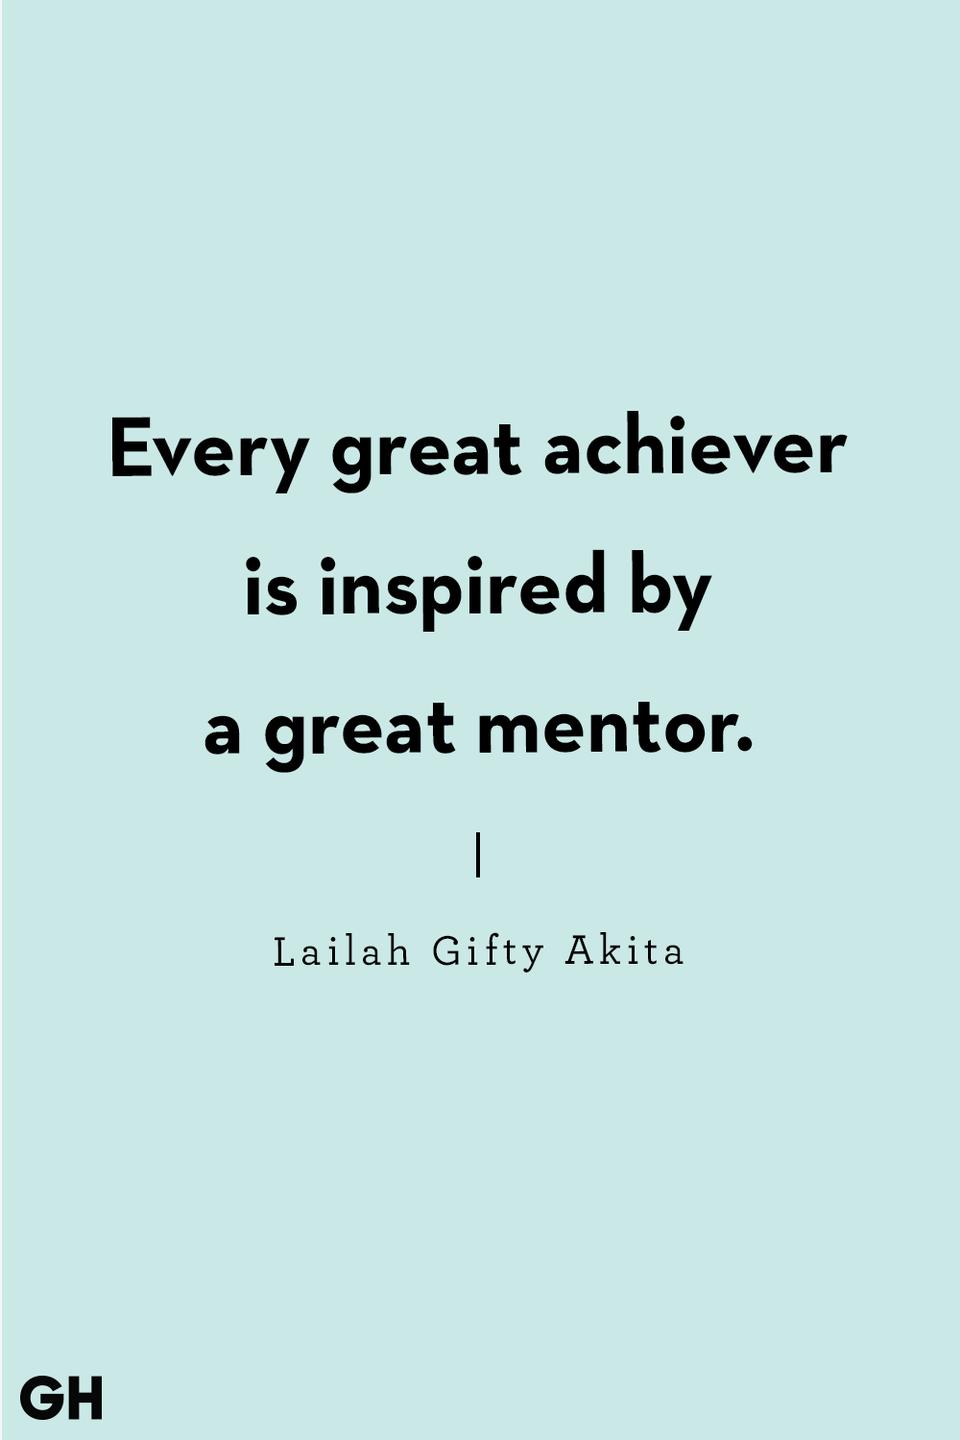 "<p>""Every great achiever is inspired by a great mentor.""</p>"